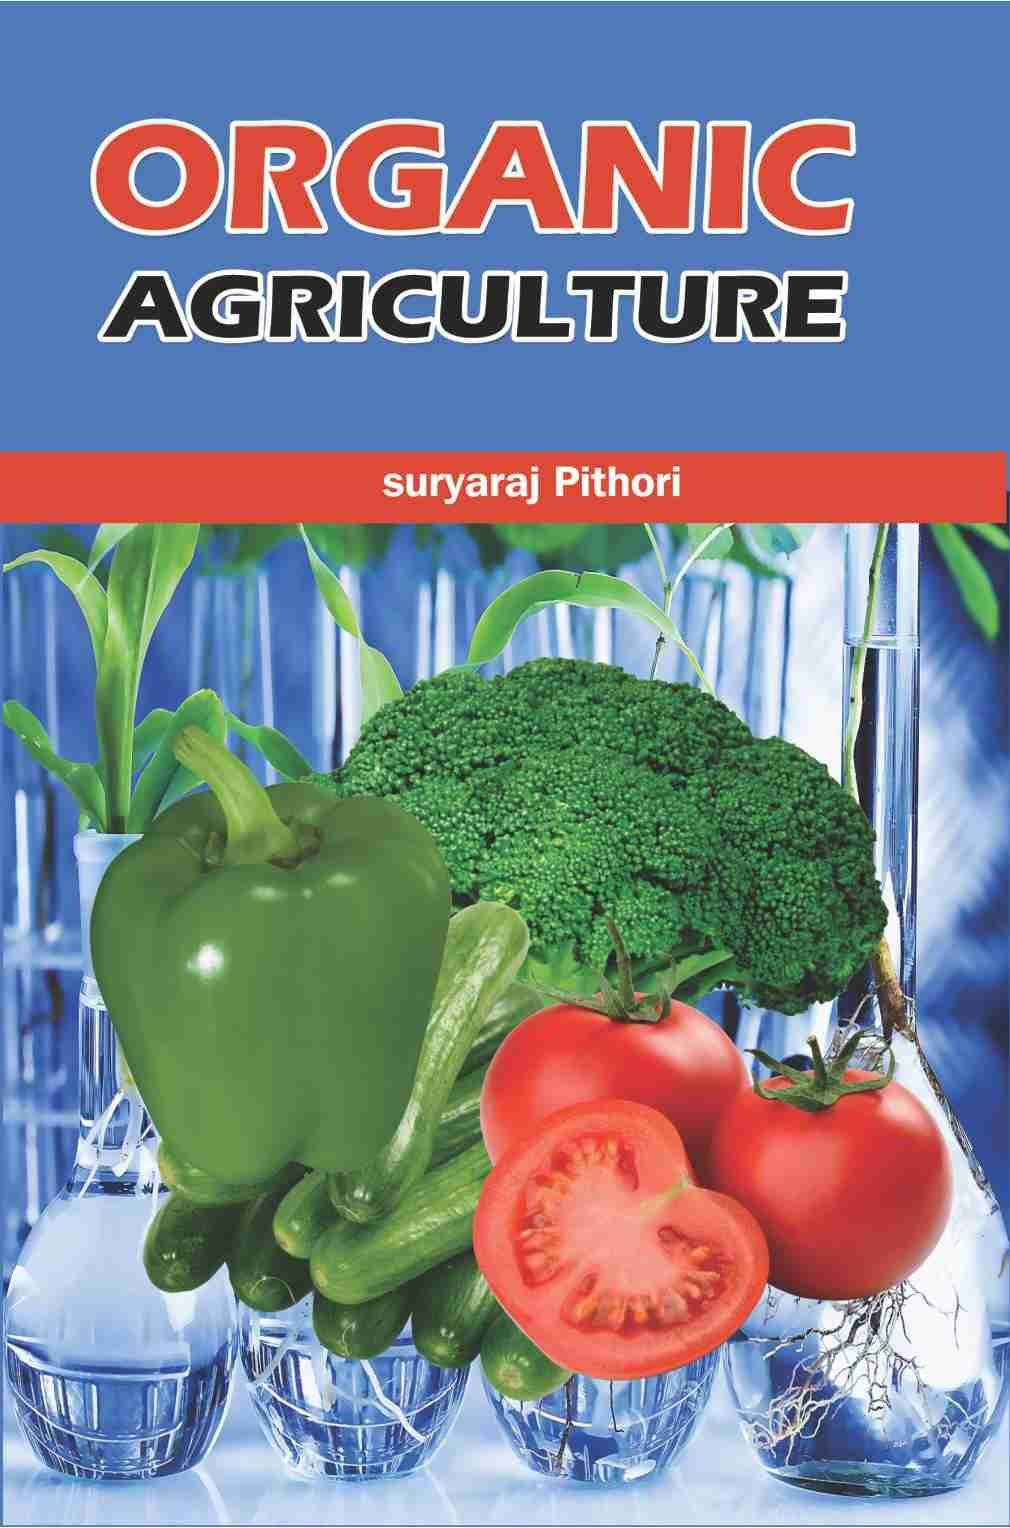 Cater to the needs of UG & PG studying organic agriculture